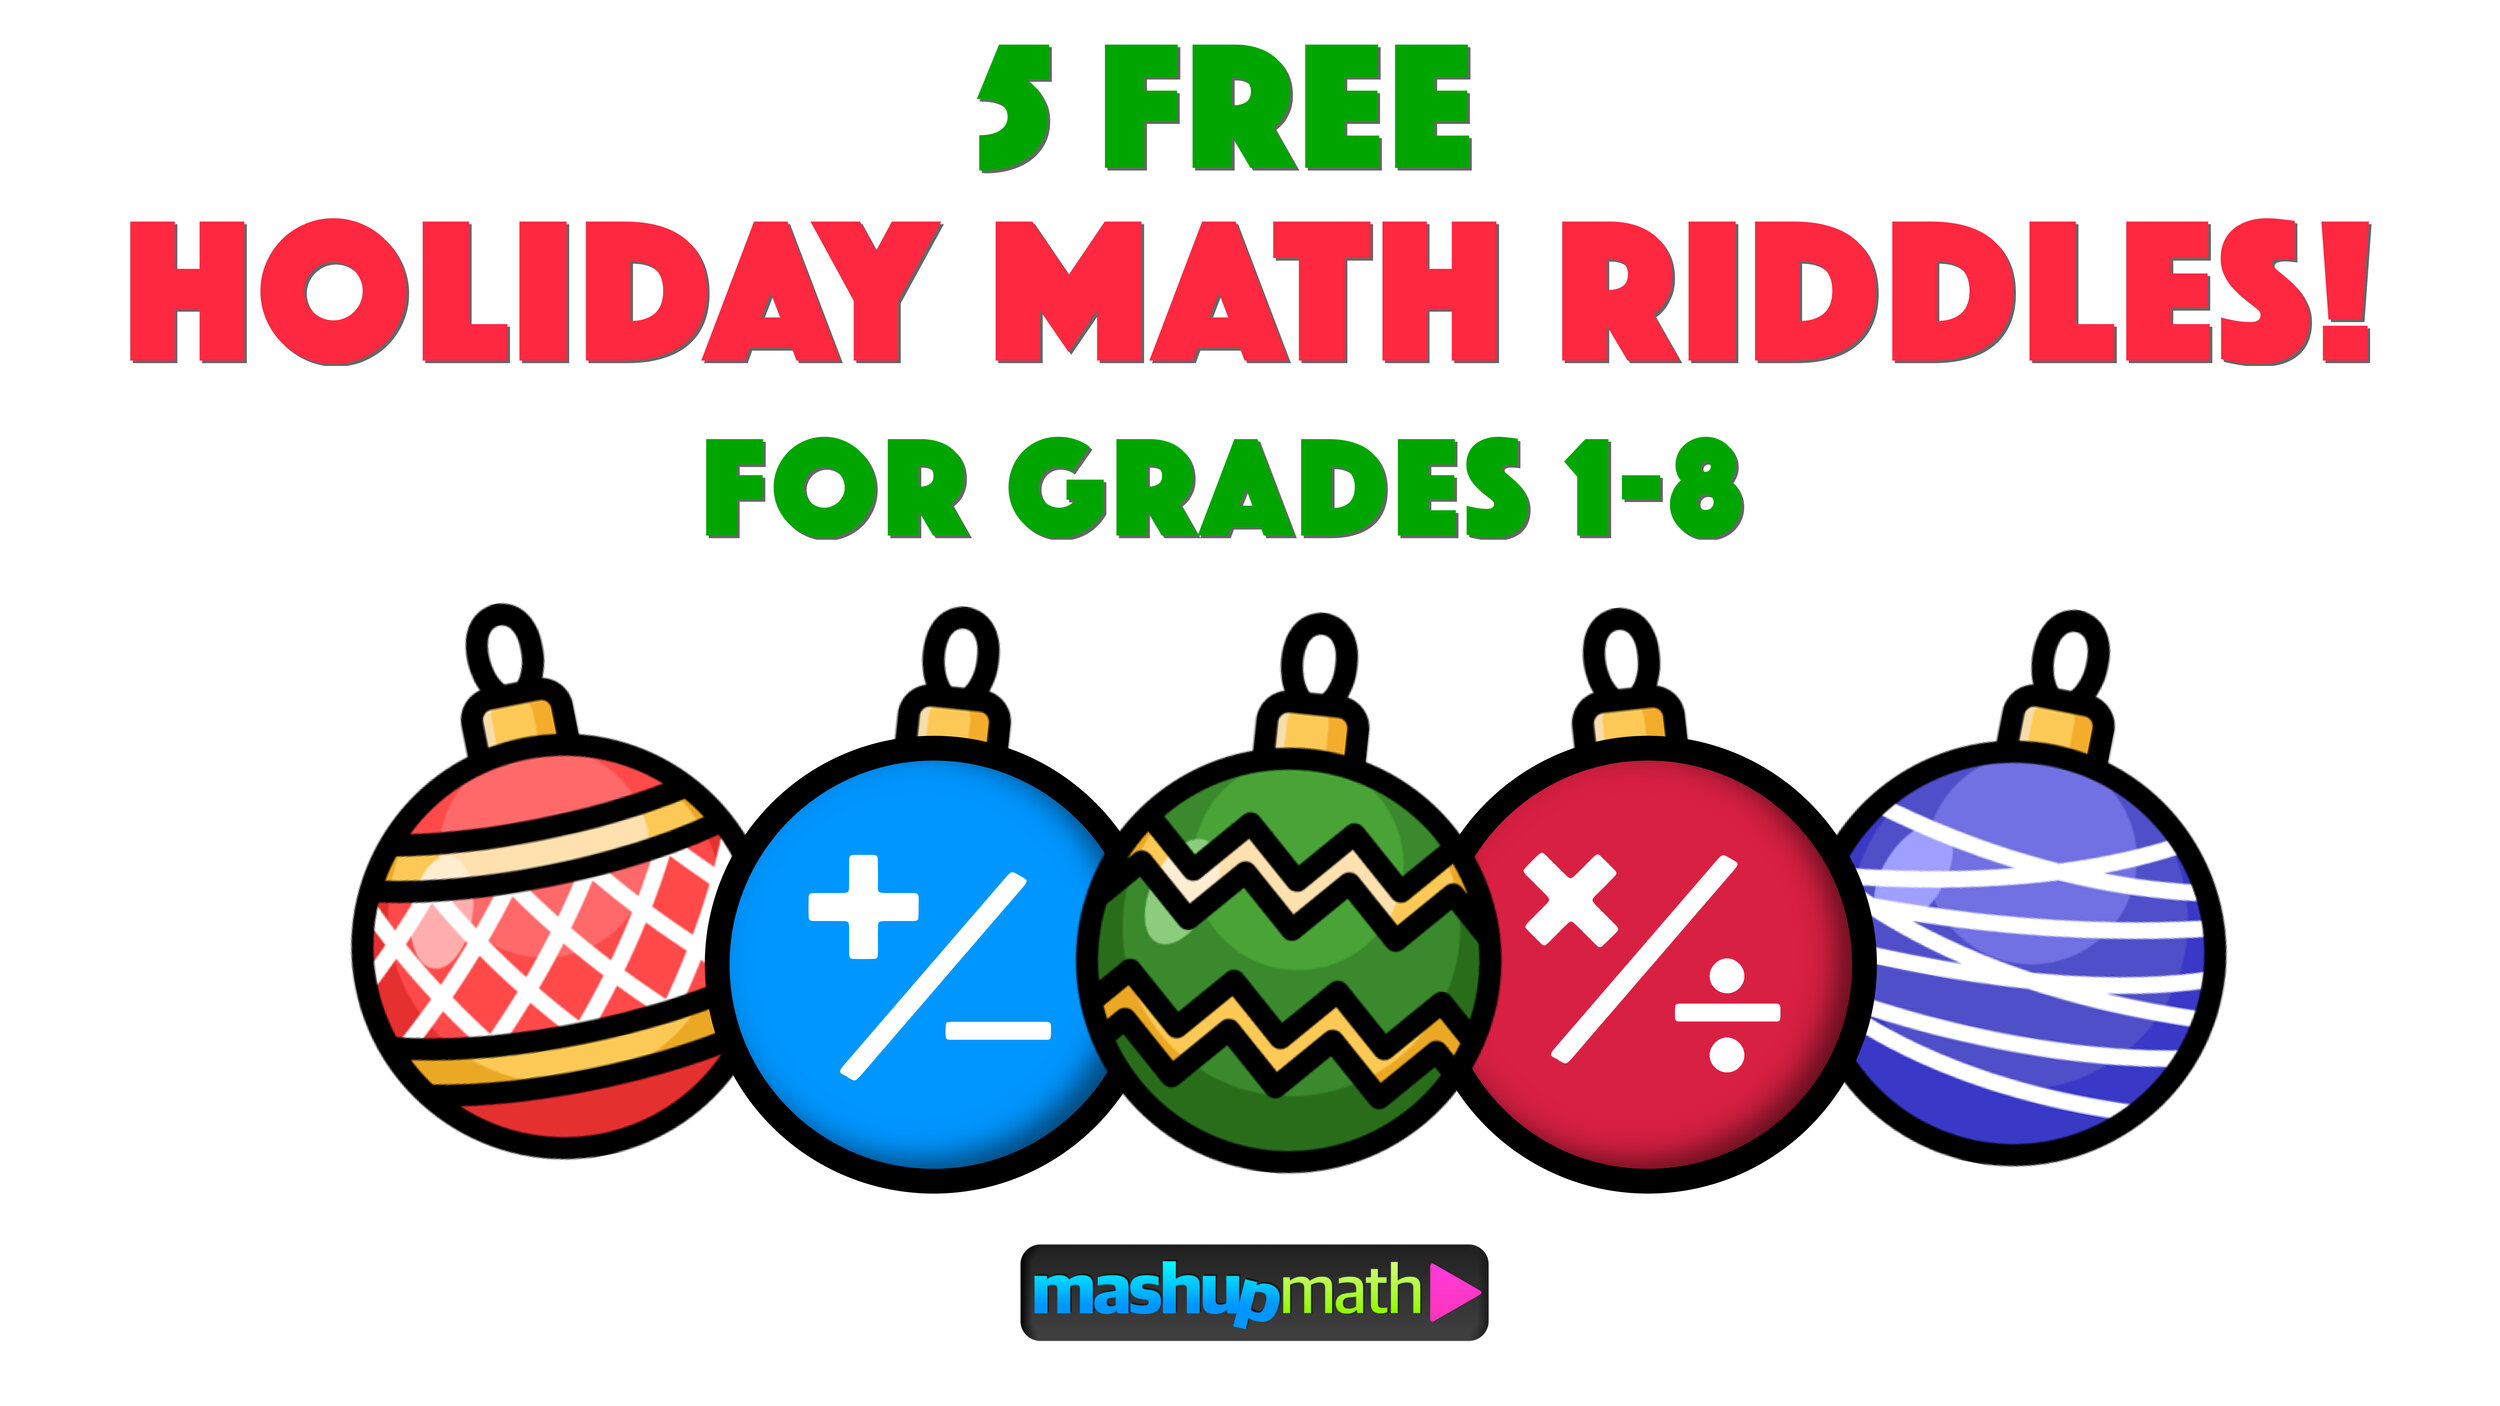 medium resolution of 5 Fun Christmas Math Riddles and Brain Teasers for Grades 1-8 — Mashup Math